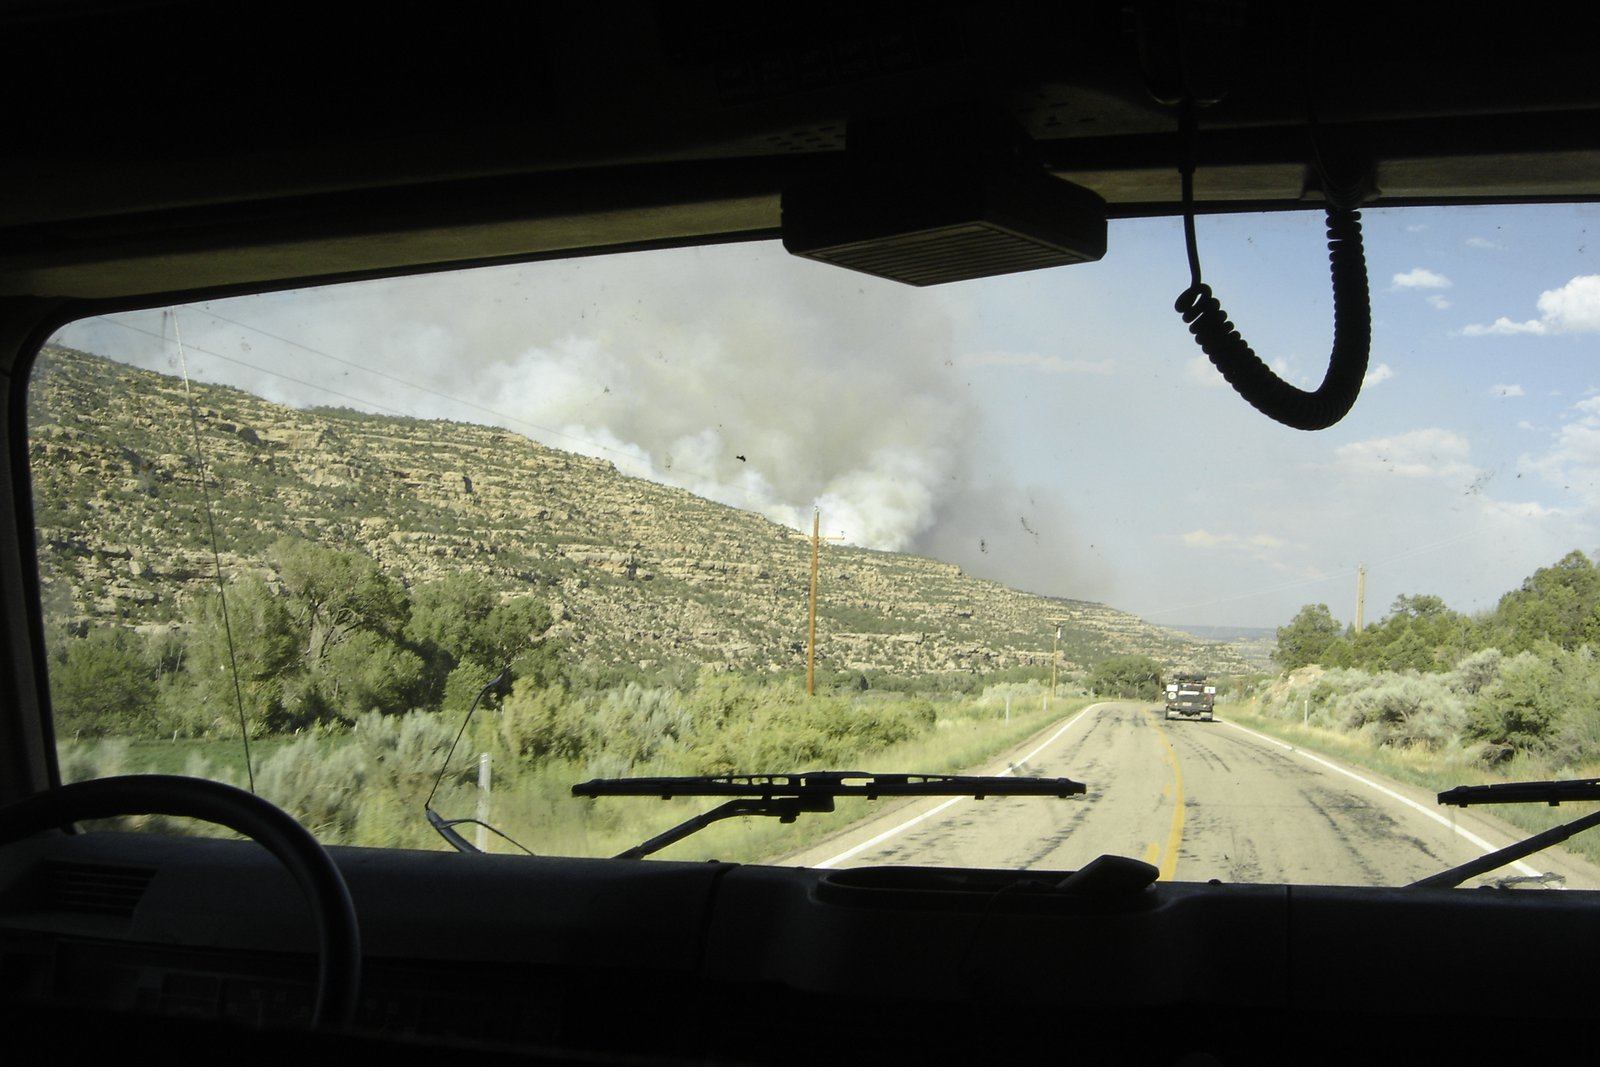 Driving to the Wagstaff Fire